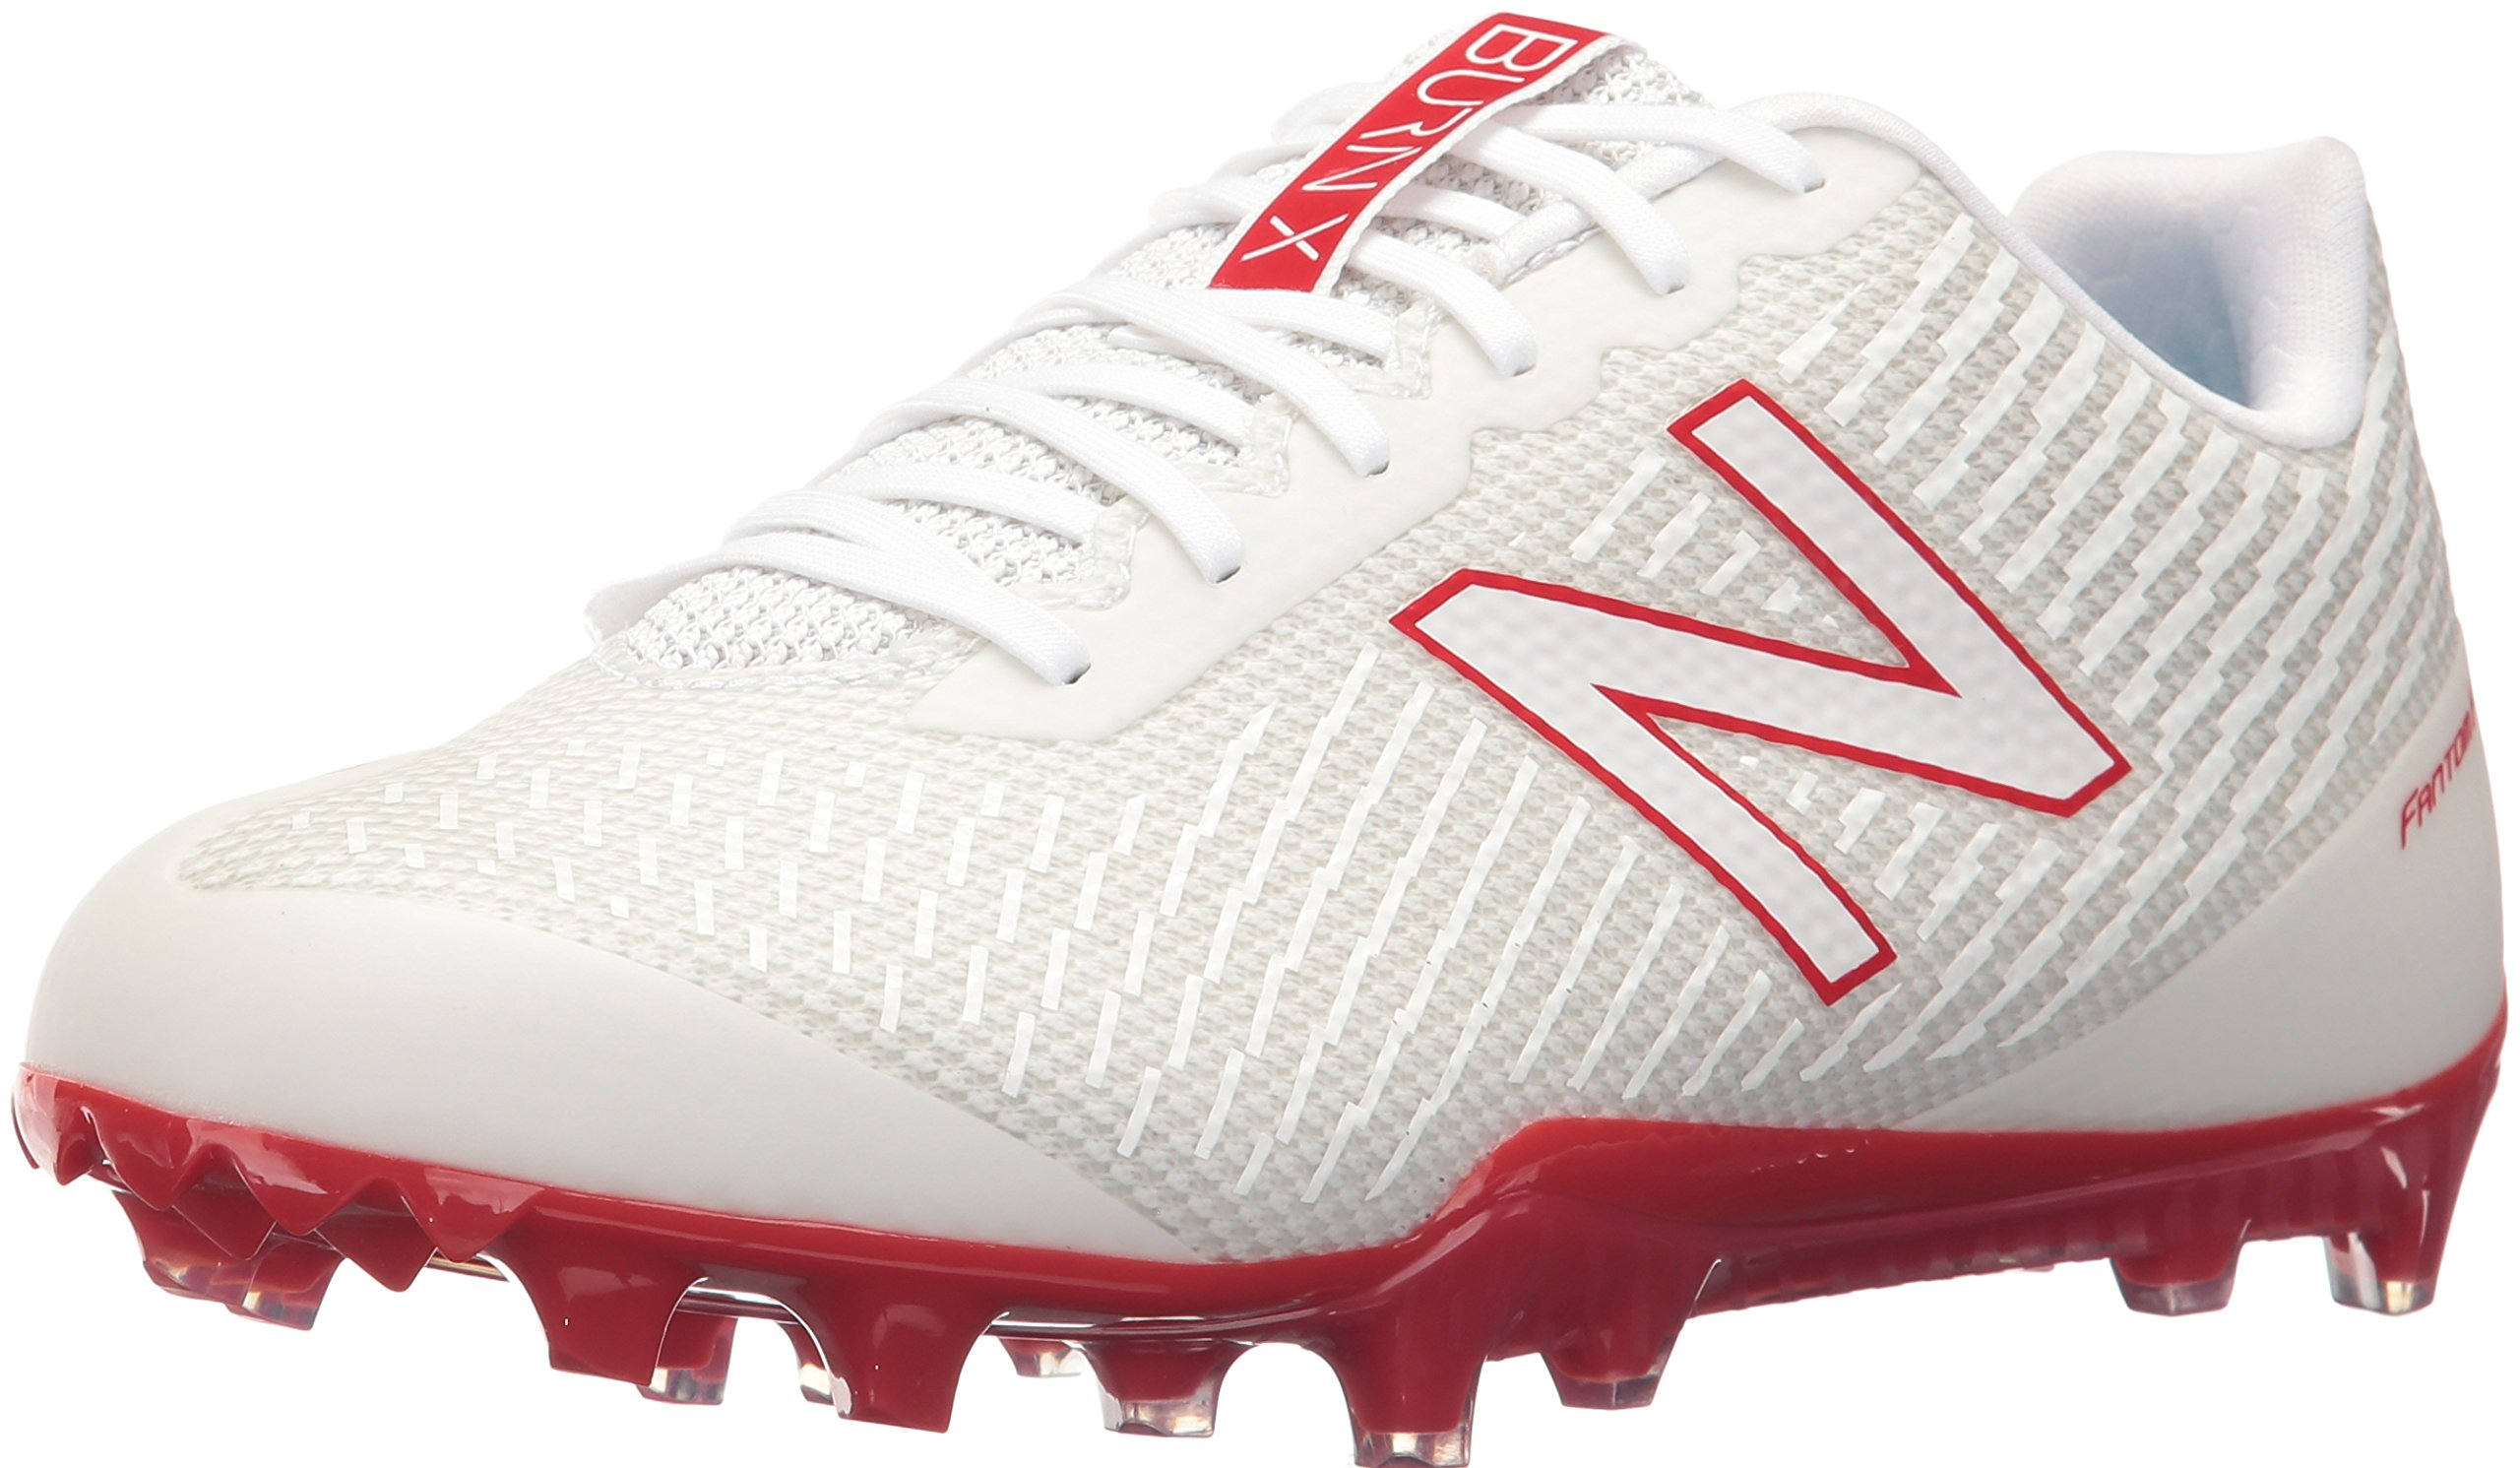 New Balance Men's Burn Low Speed Lacrosse Shoe, White/Red, 7 D US